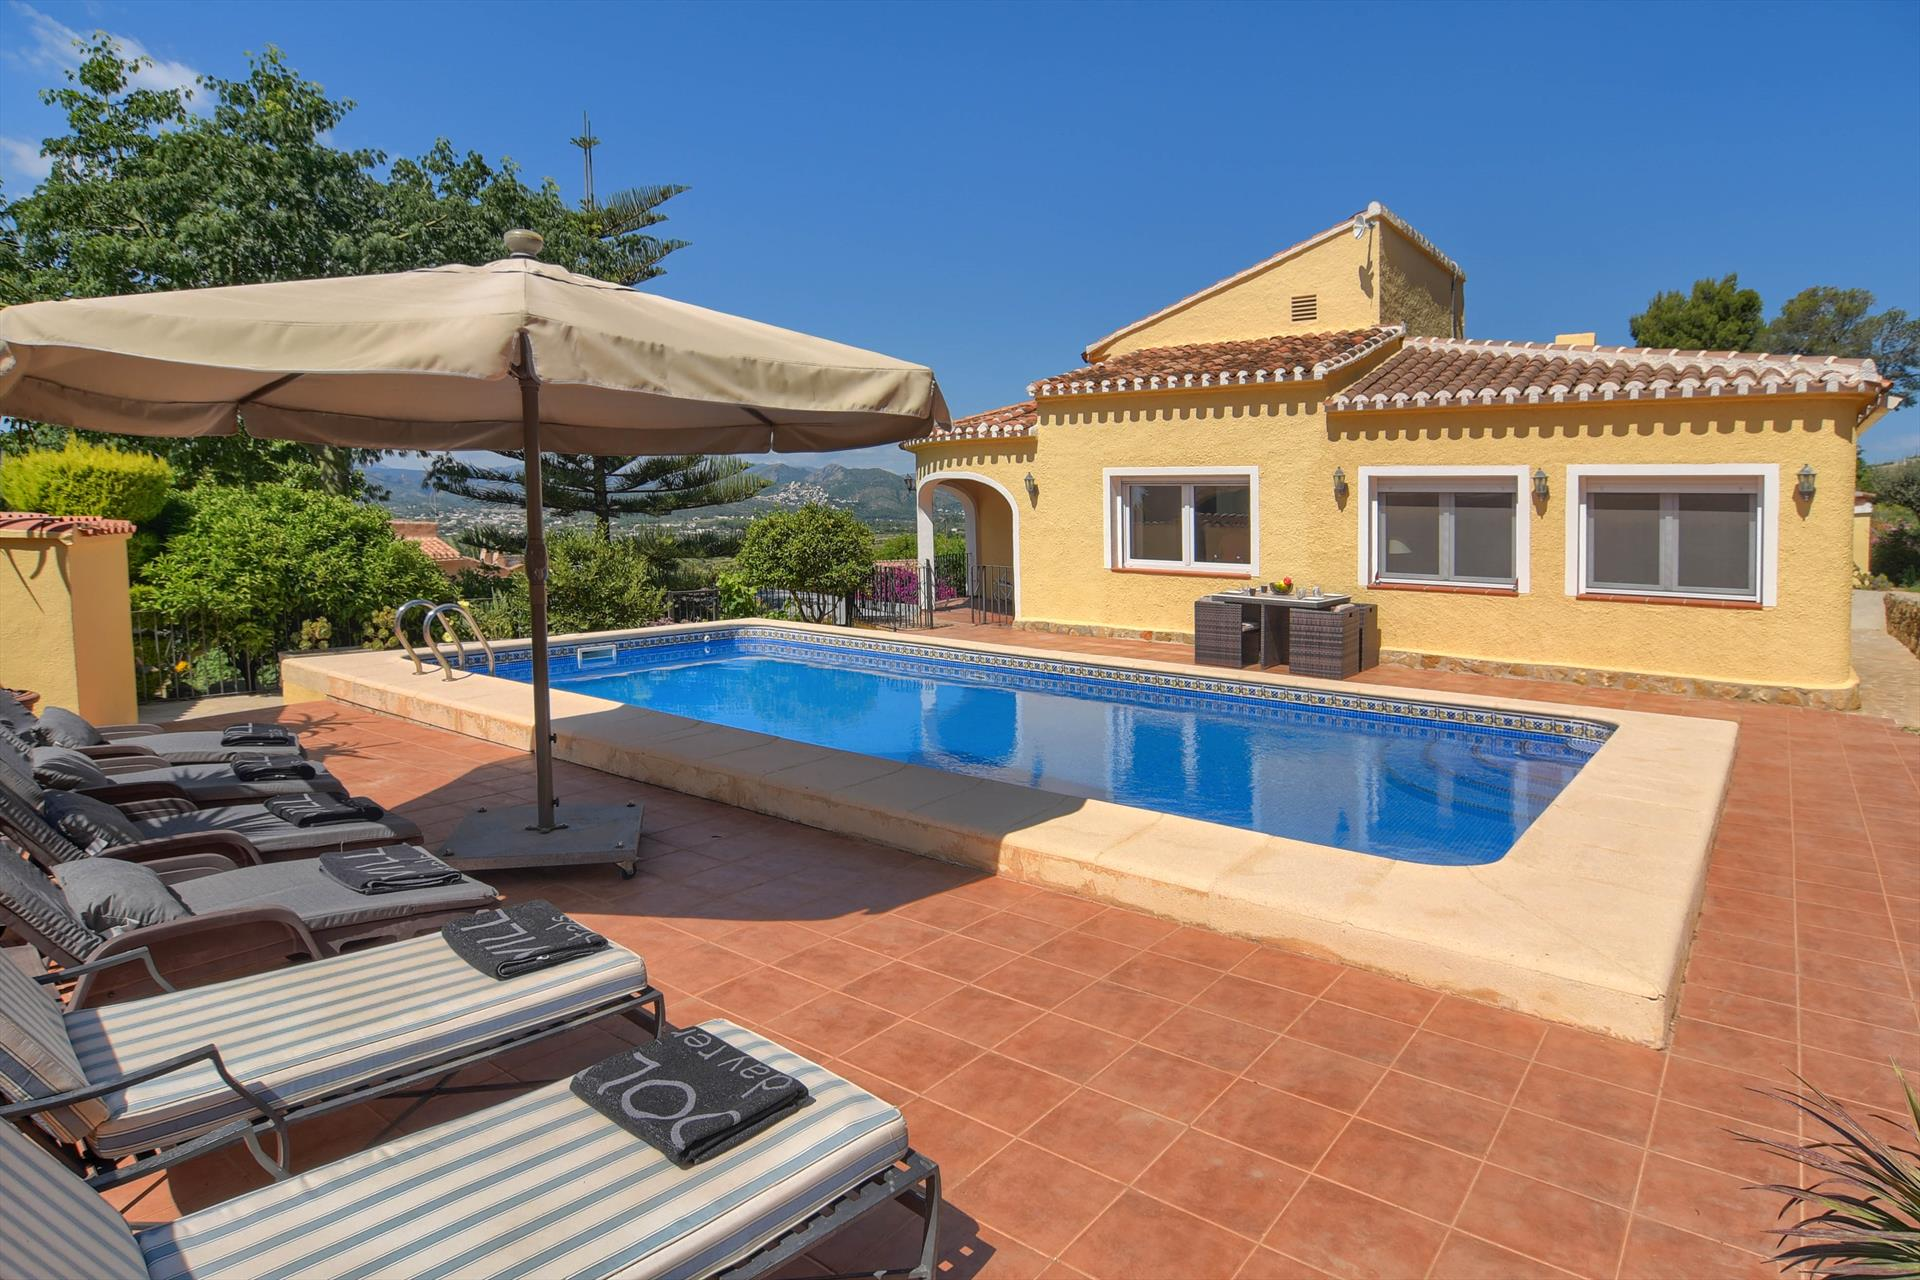 El Elefante 4 pax,Beautiful and comfortable villa in Javea, on the Costa Blanca, Spain  with private pool for 4 persons.....